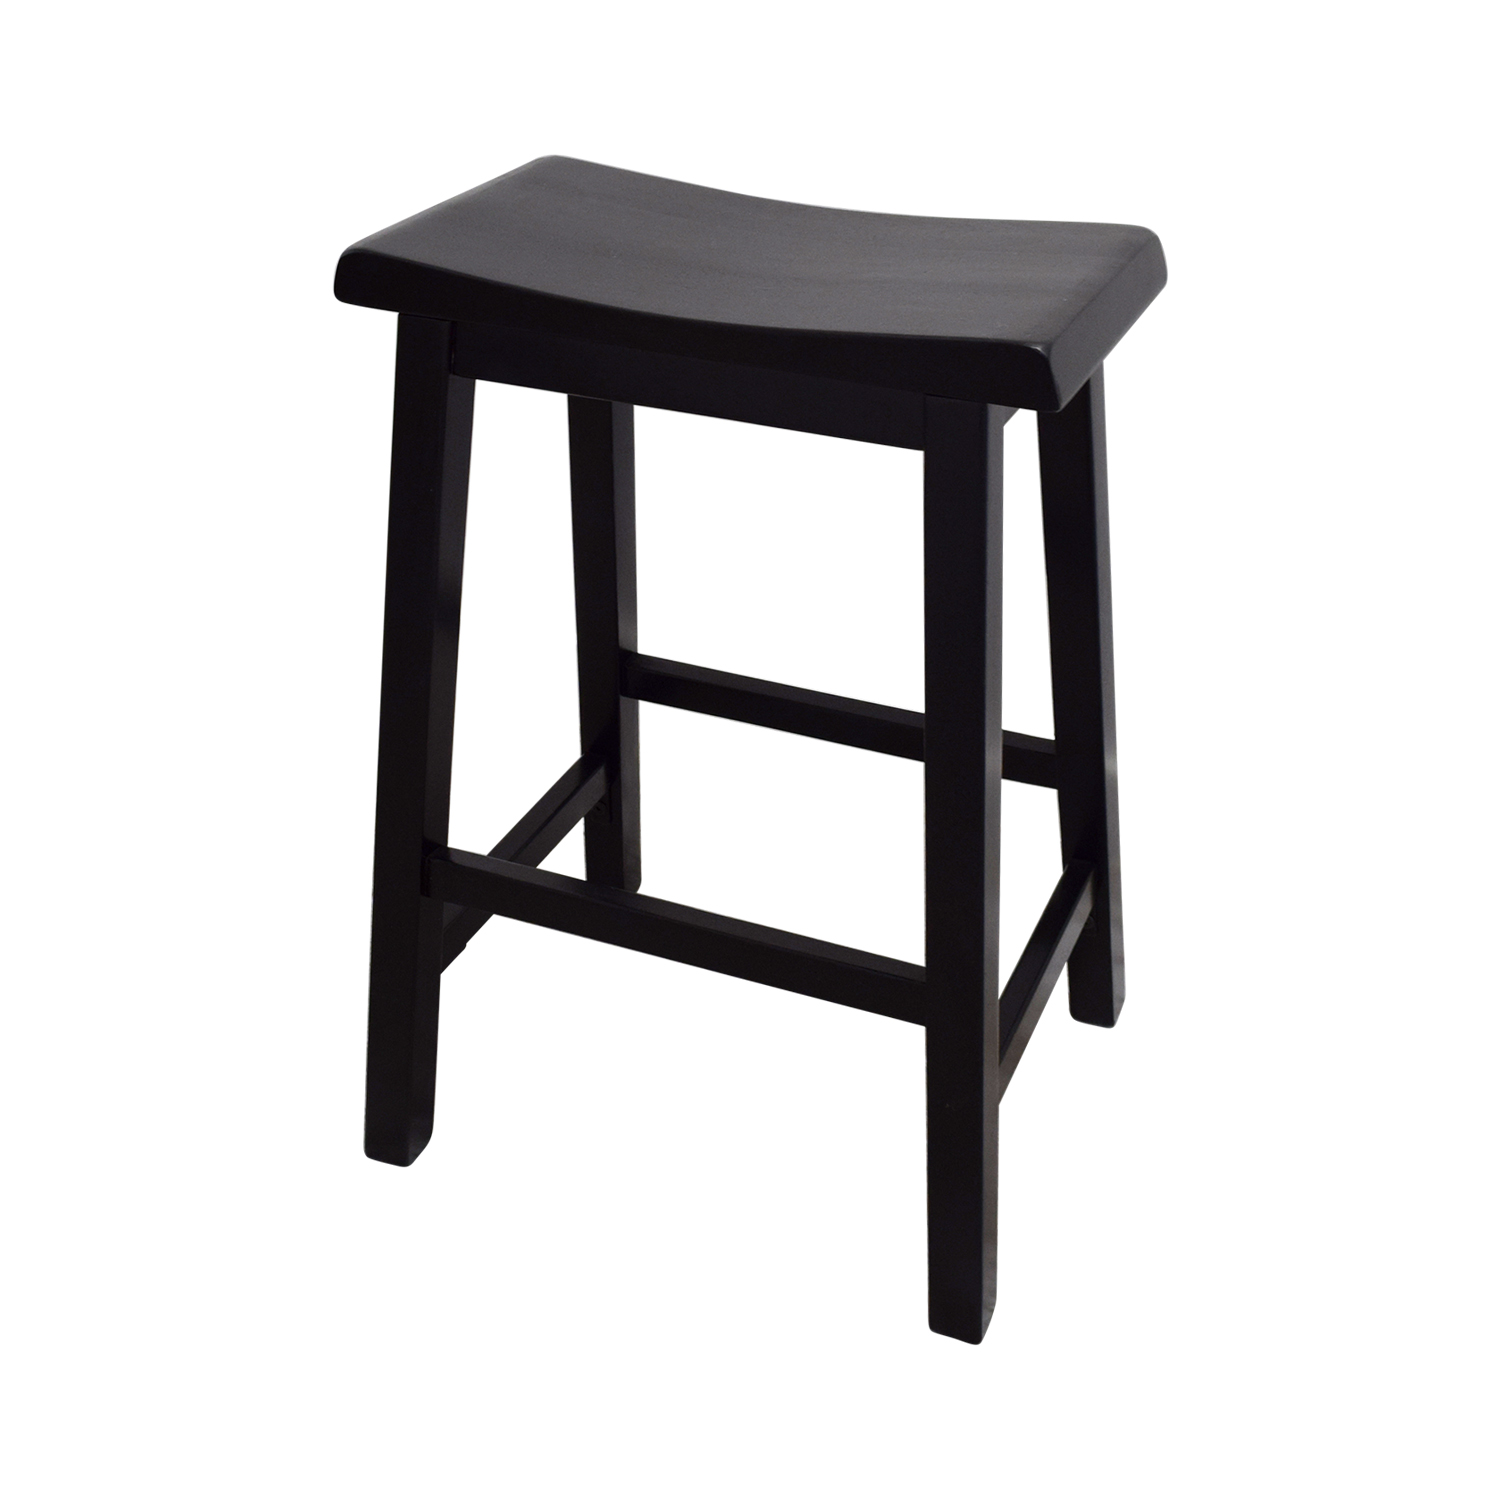 shop Simple Bar Table with Two Chairs and Two Stools Dining Sets